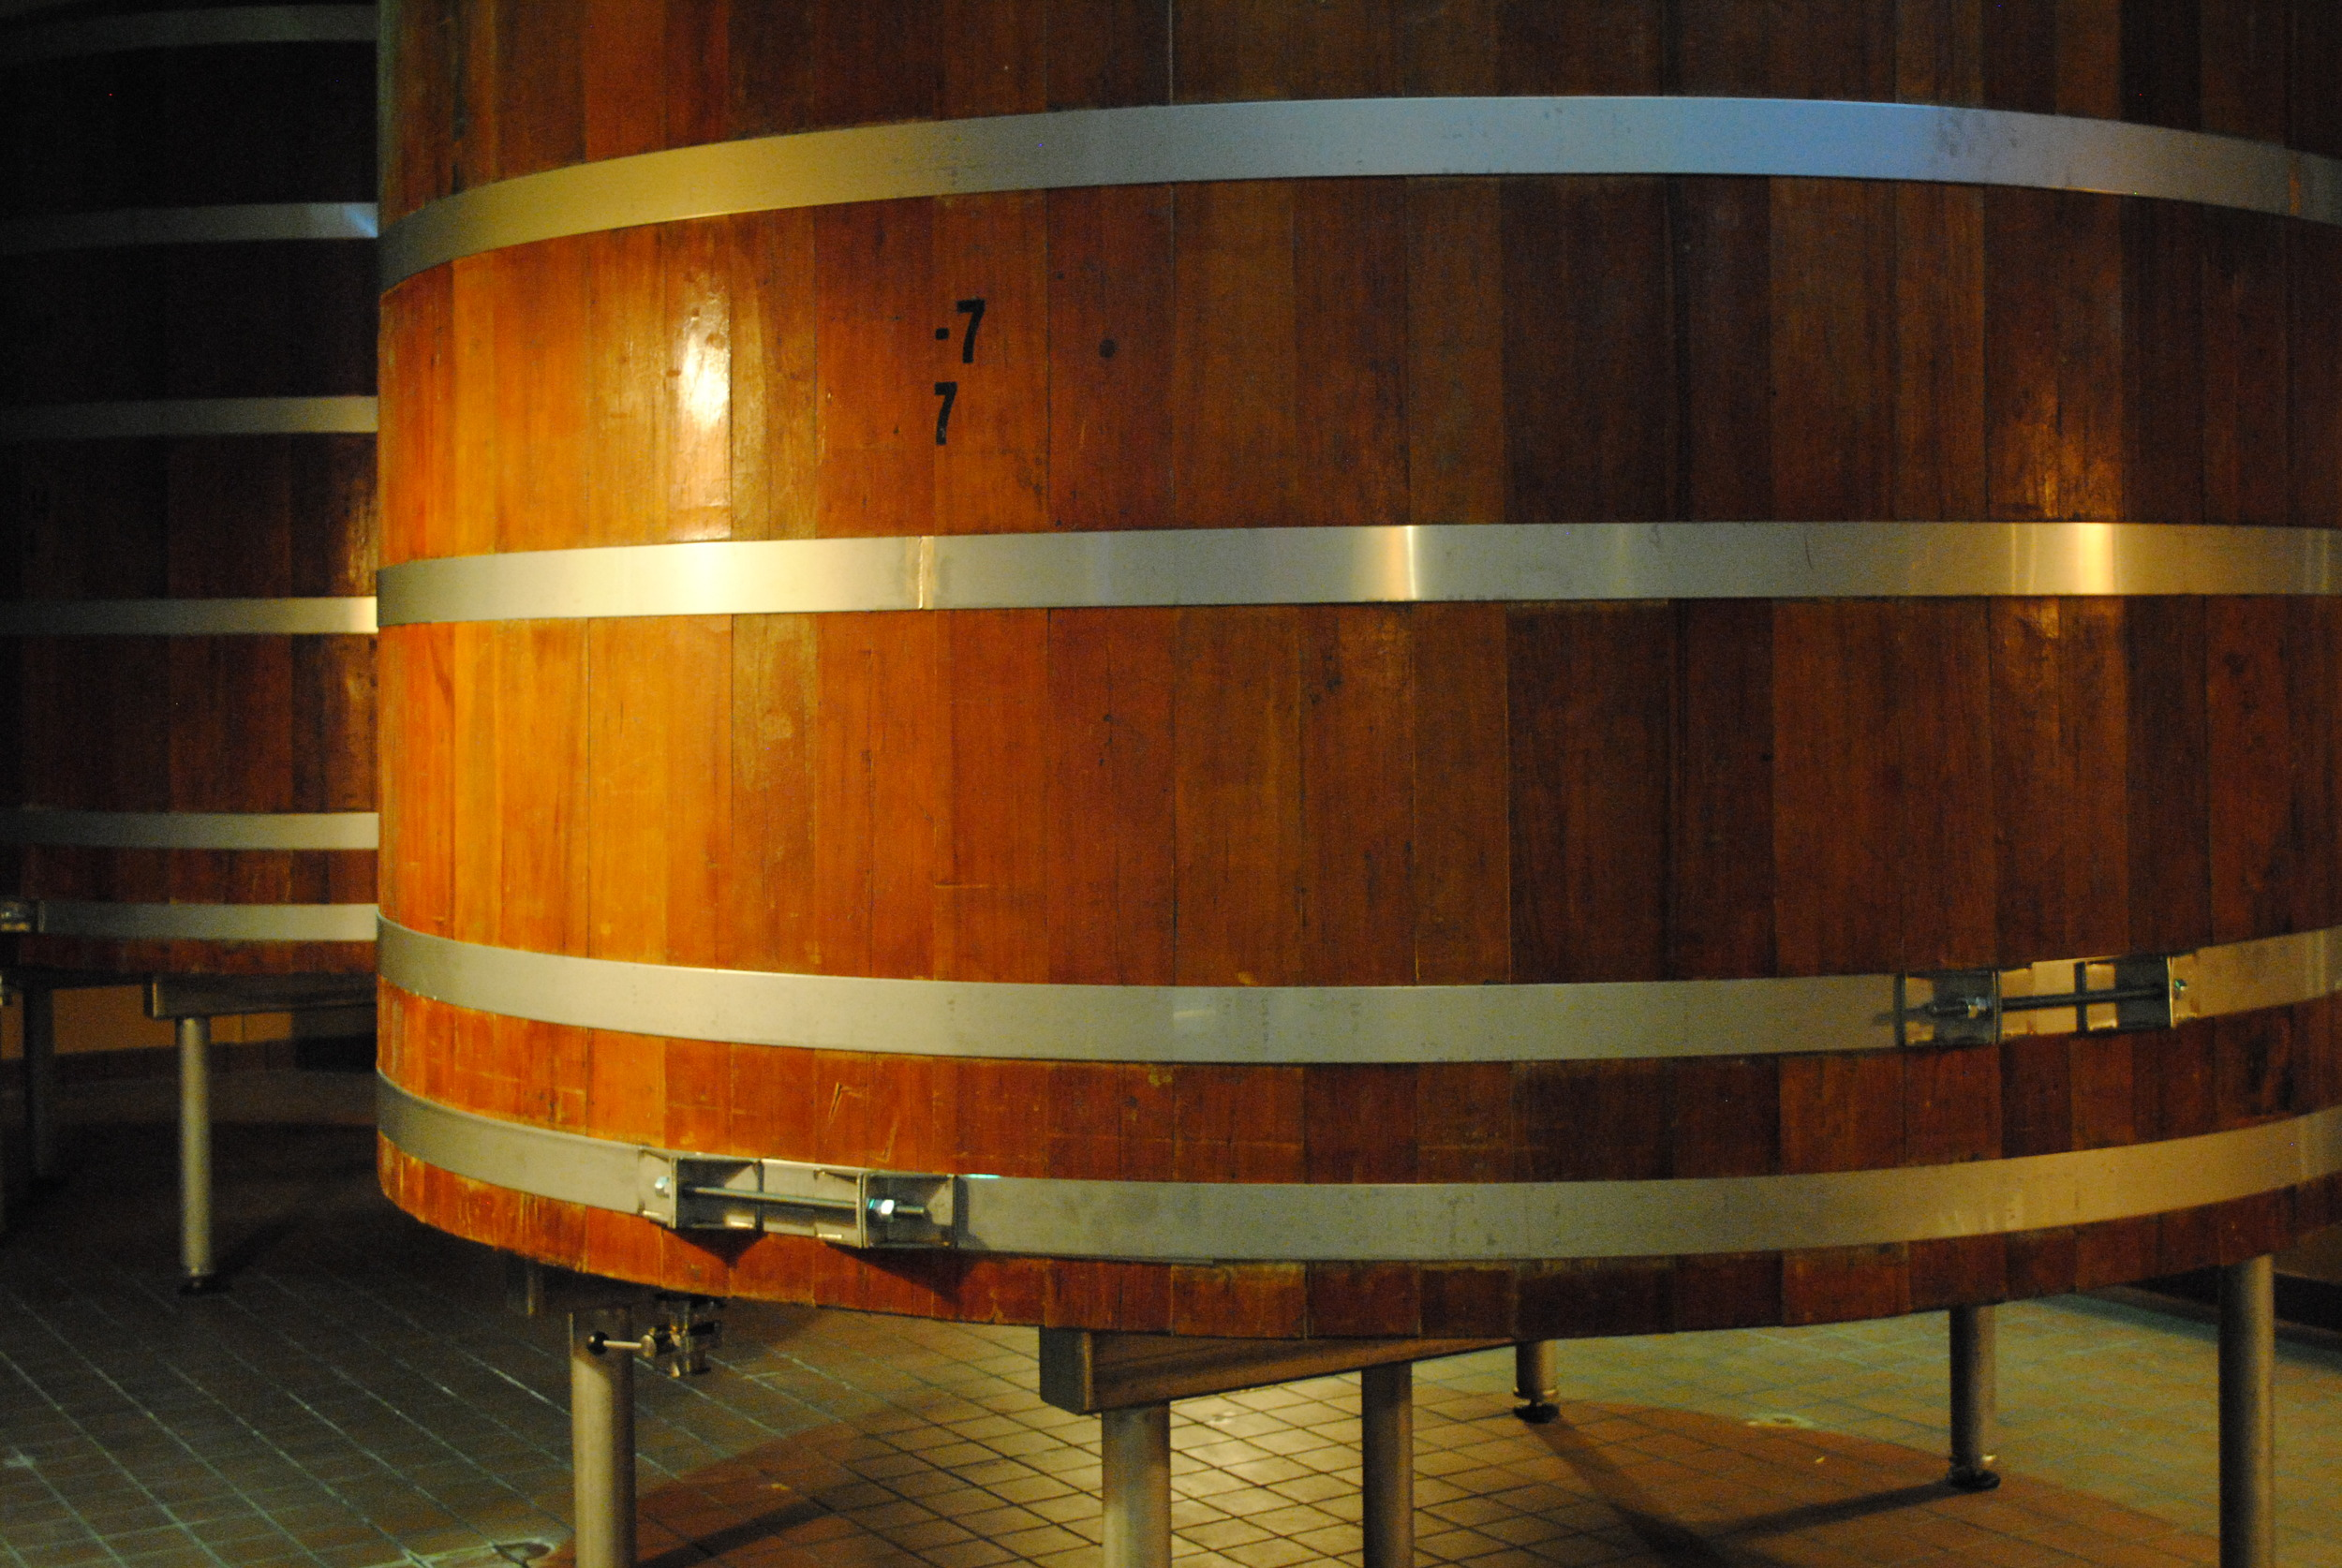 The repurposed Stroh's open fermentors stand ready for an upcoming Bell's brew